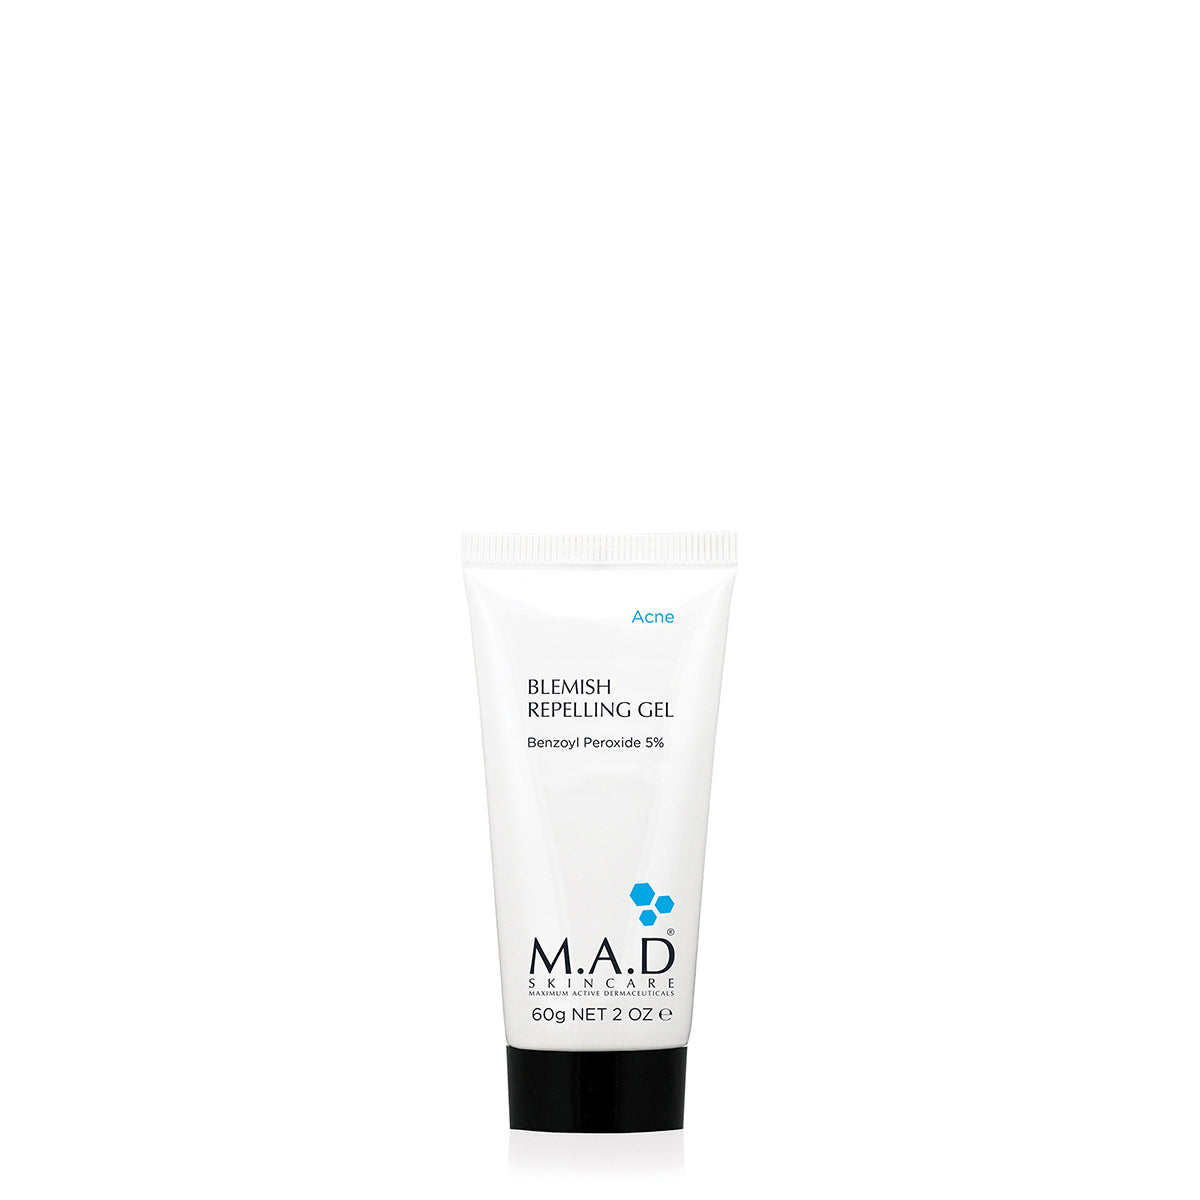 BLEMISH REPELLING GEL